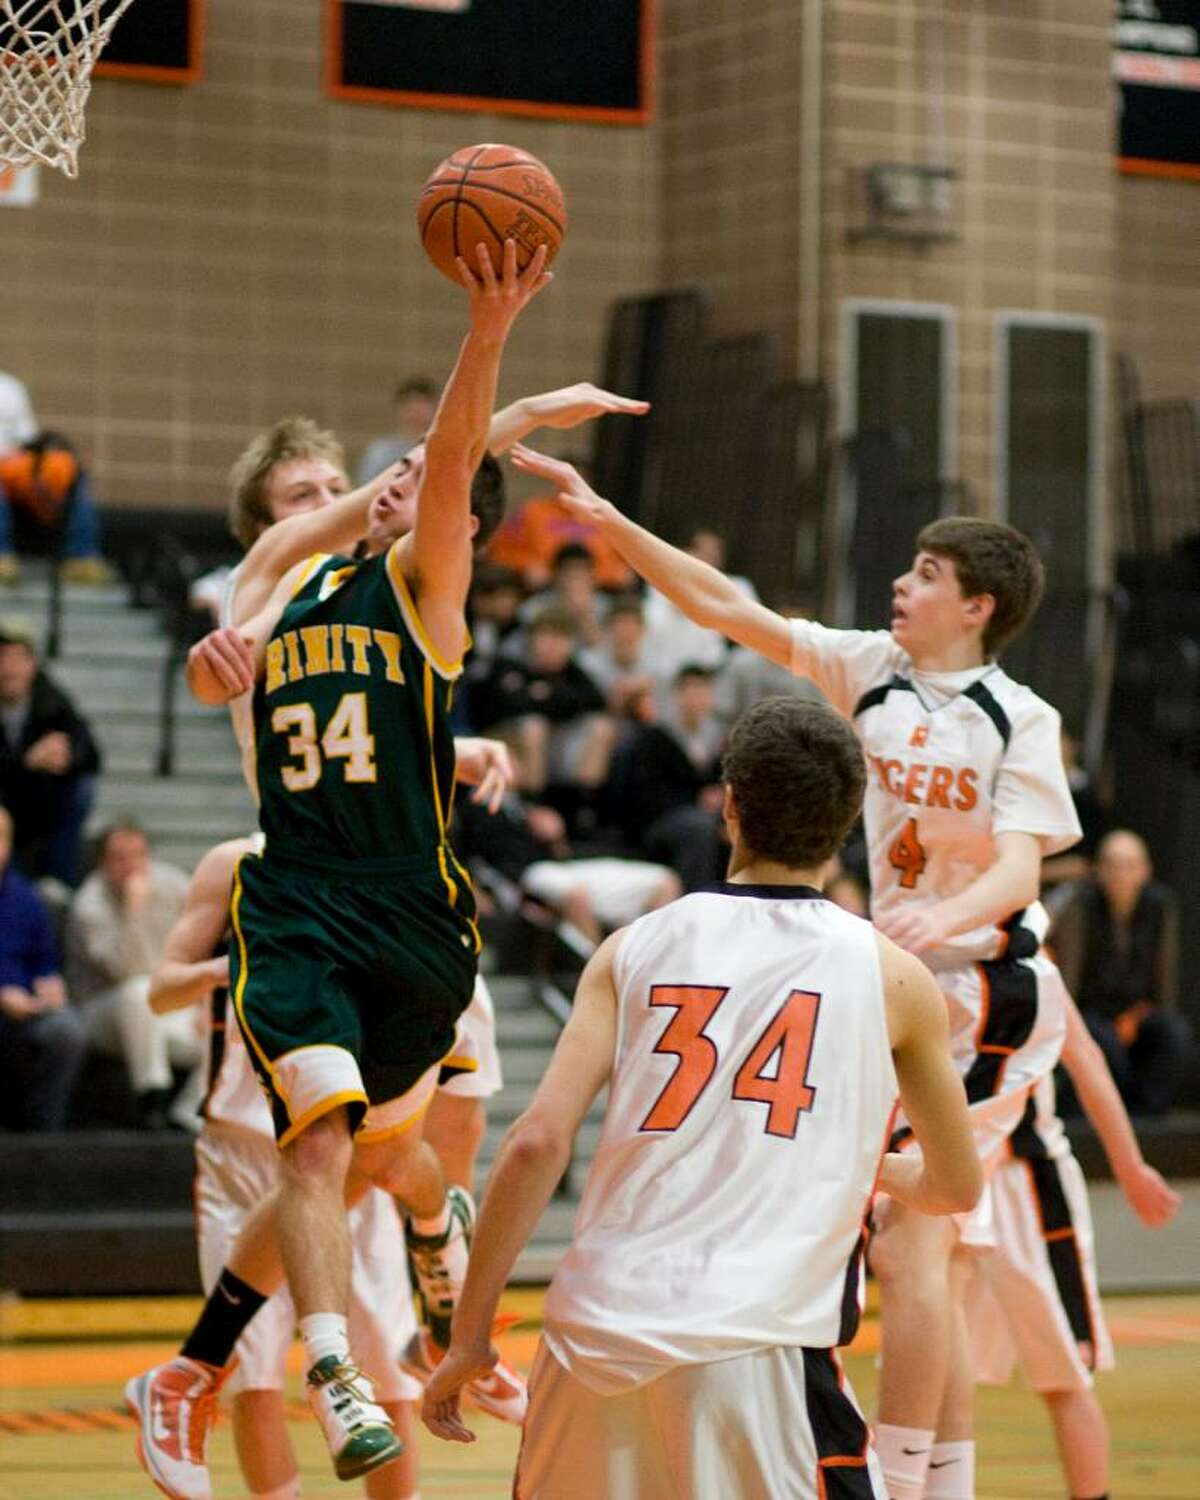 Trinity Catholic's Remy Pinson (34) goes in for a layup in an FCIAC game against Ridgefield Monday night at Ridgefield High.